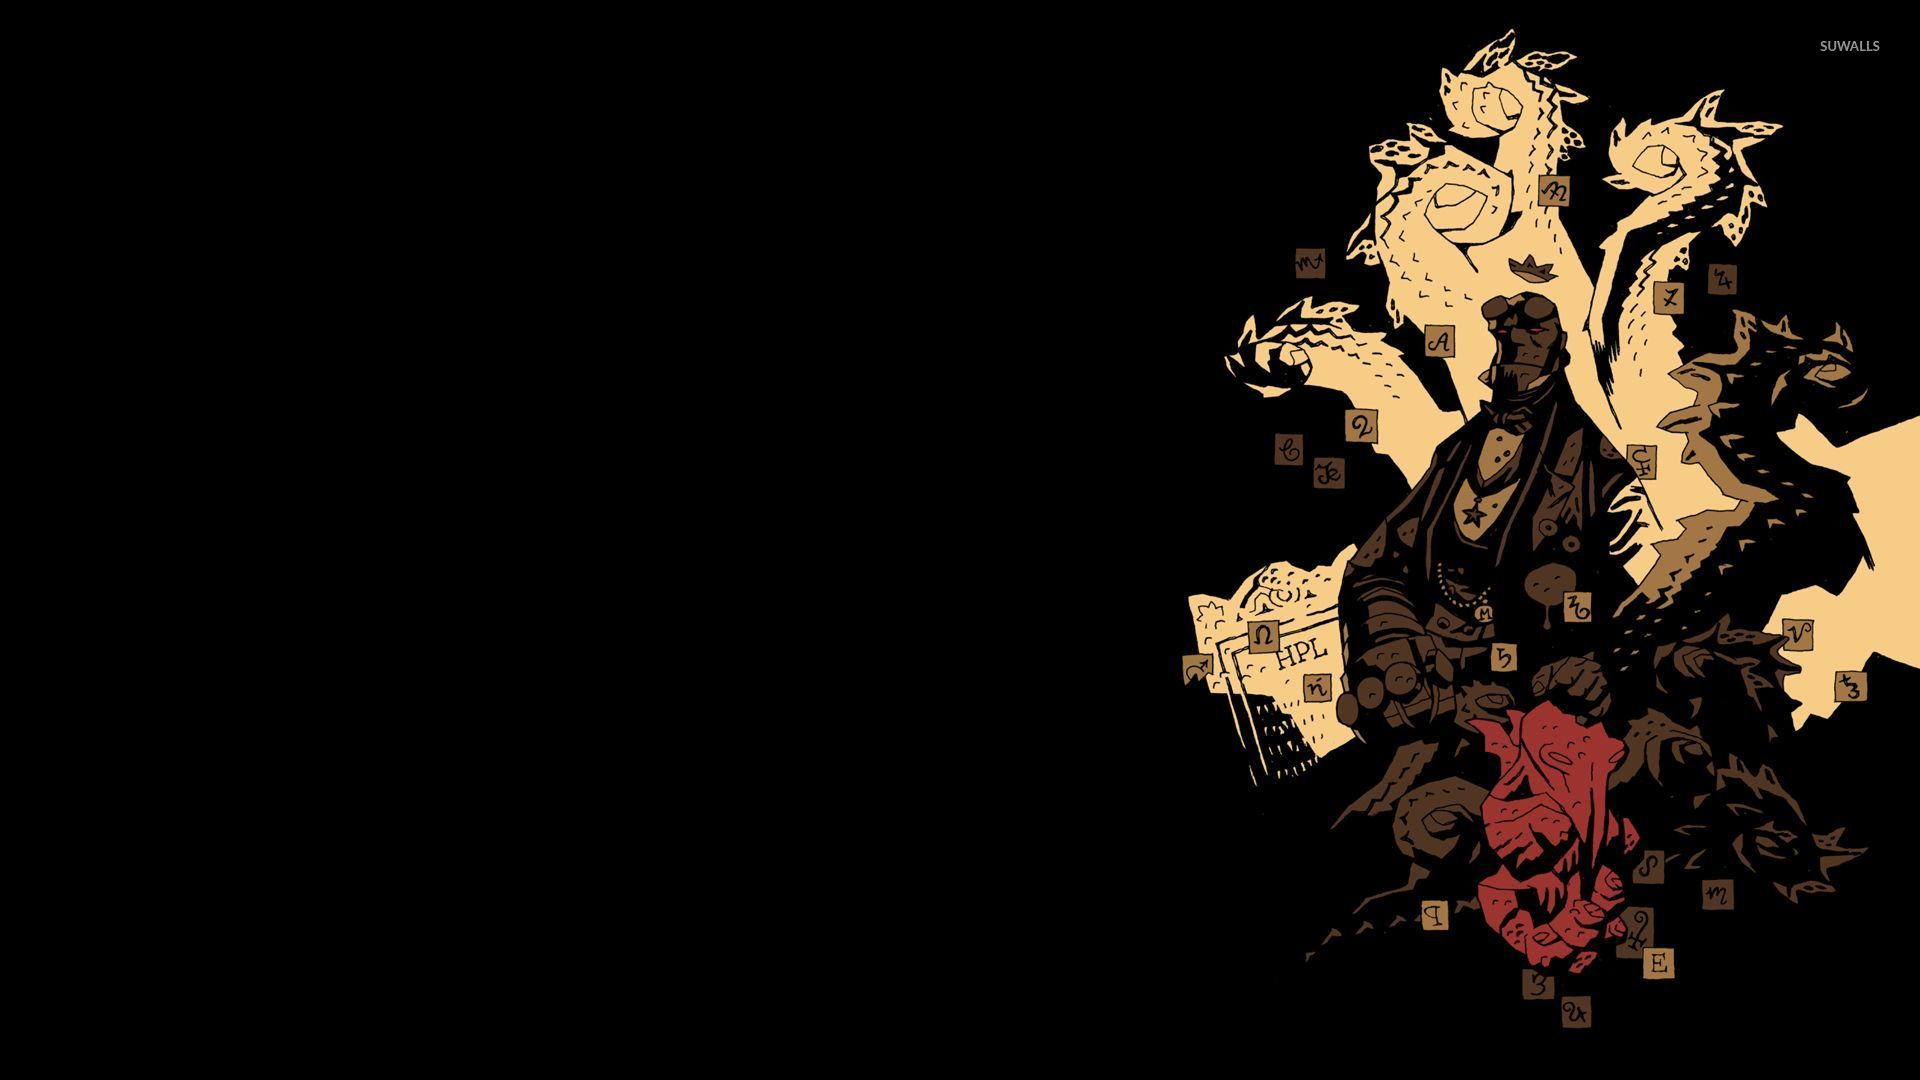 Hellboy The First 20 Years Wallpaper Mike Mignola